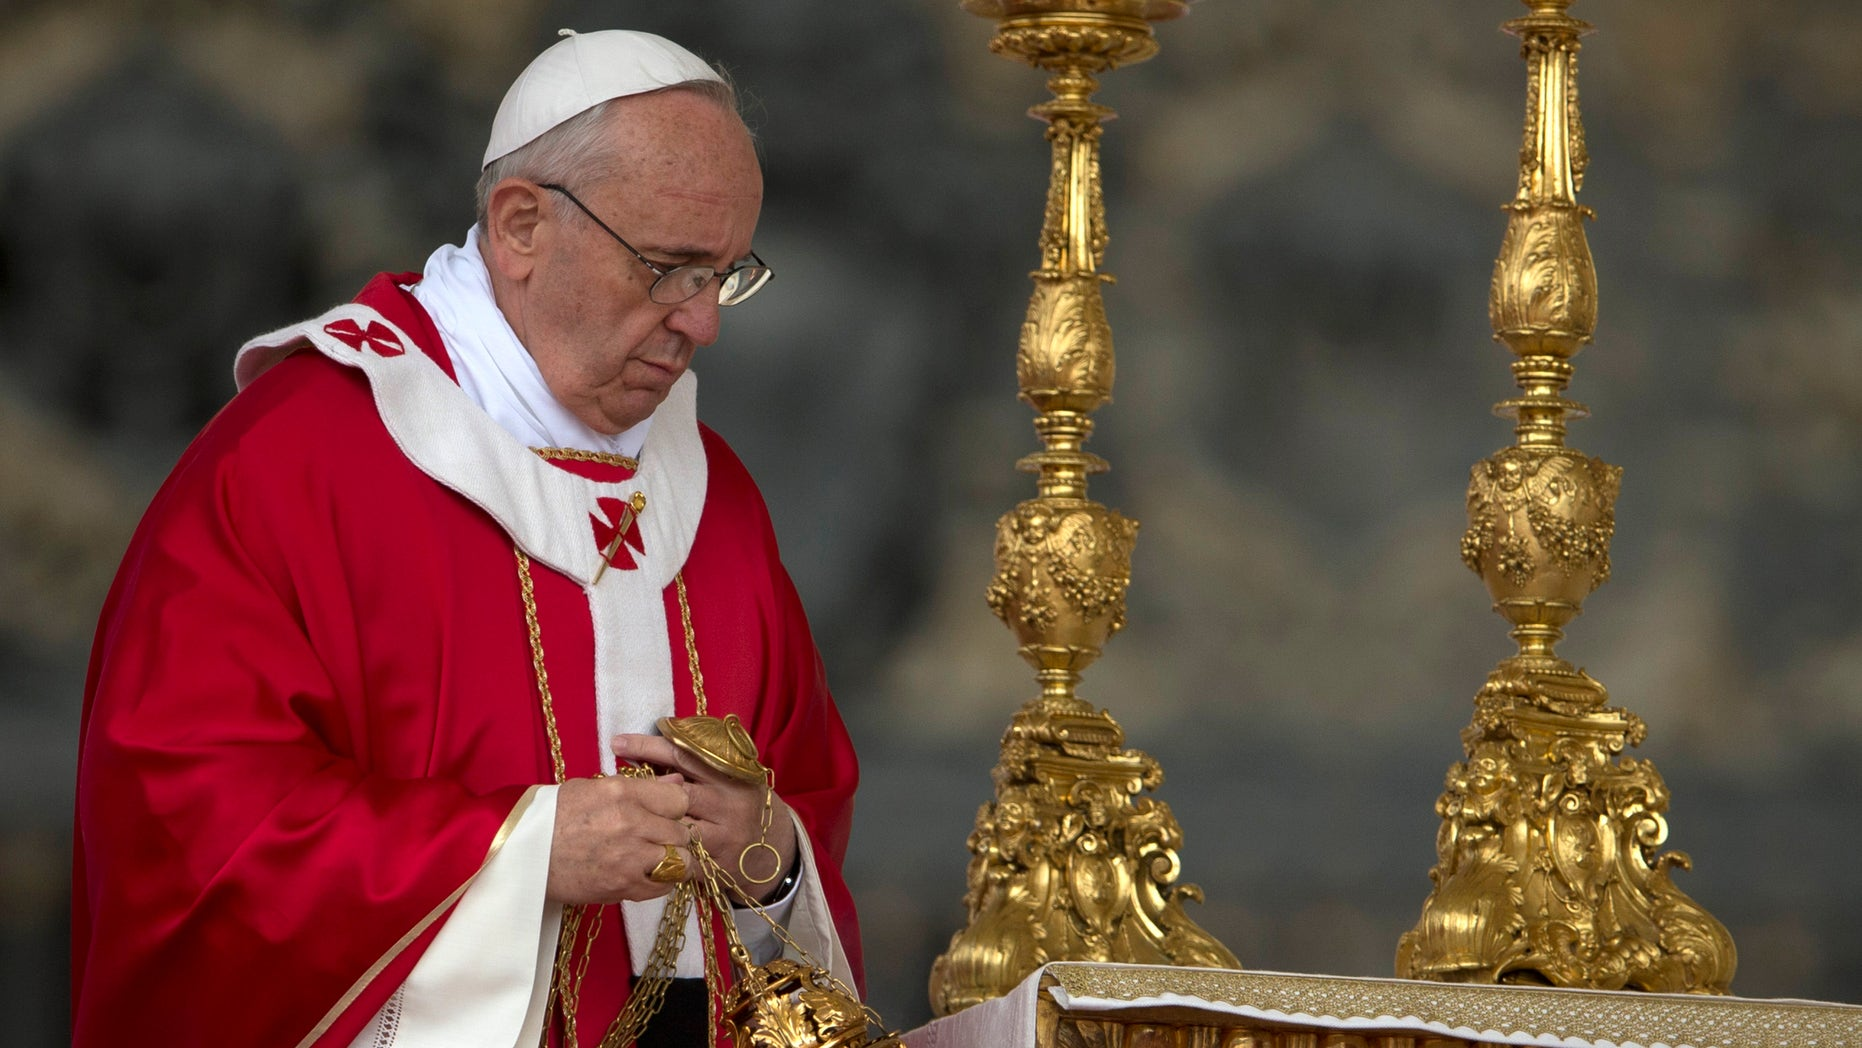 Pope Francis celebrates a Pentecost mass in St. Peter's Square at the Vatican, Sunday, May 19, 2013.( (AP Photo/Andrew Medichini)